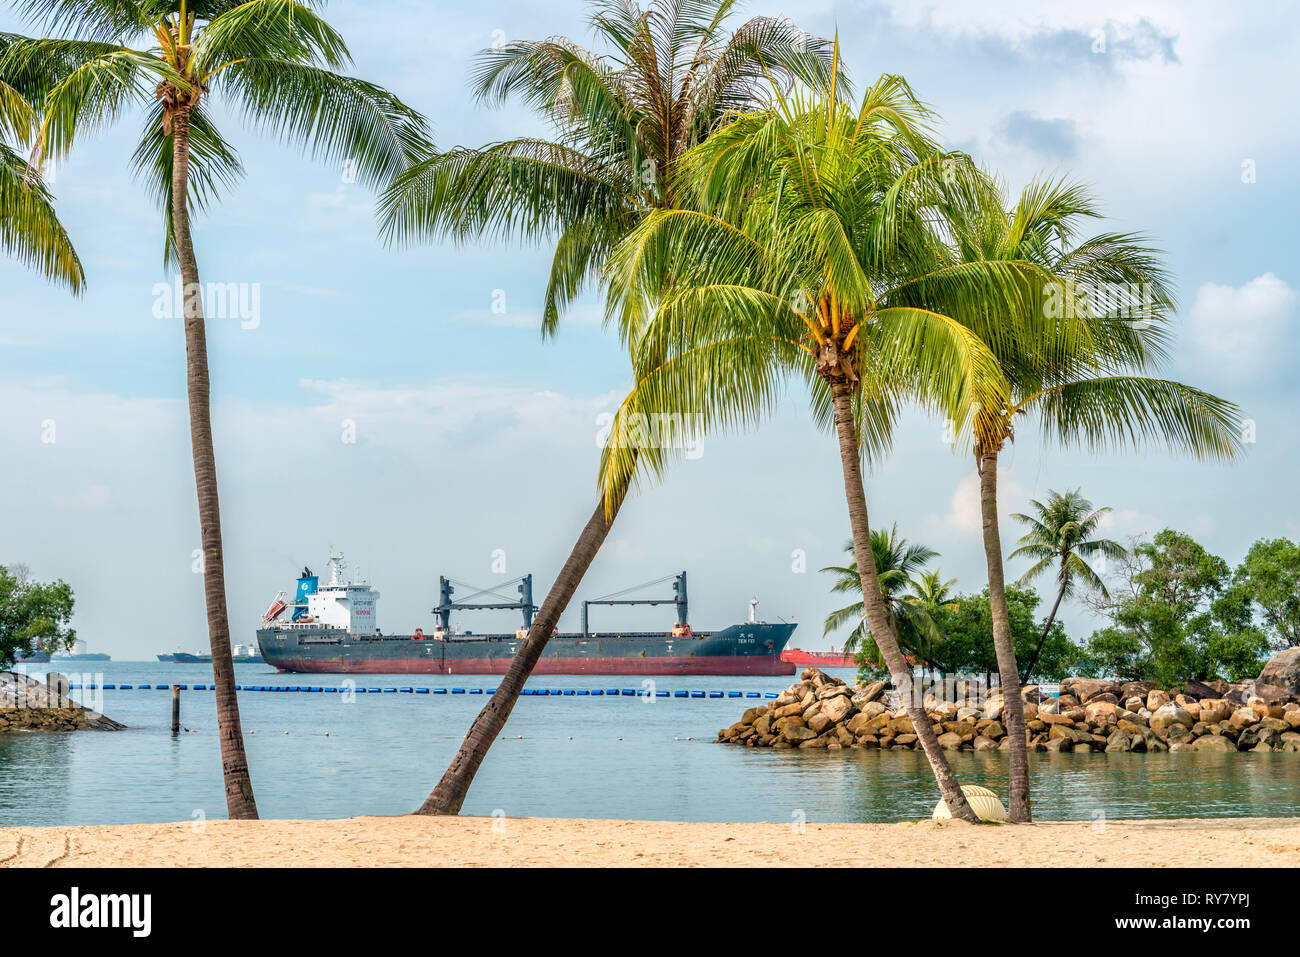 Palawan Beach On Sentosa Island With Cargo Ship Moored In